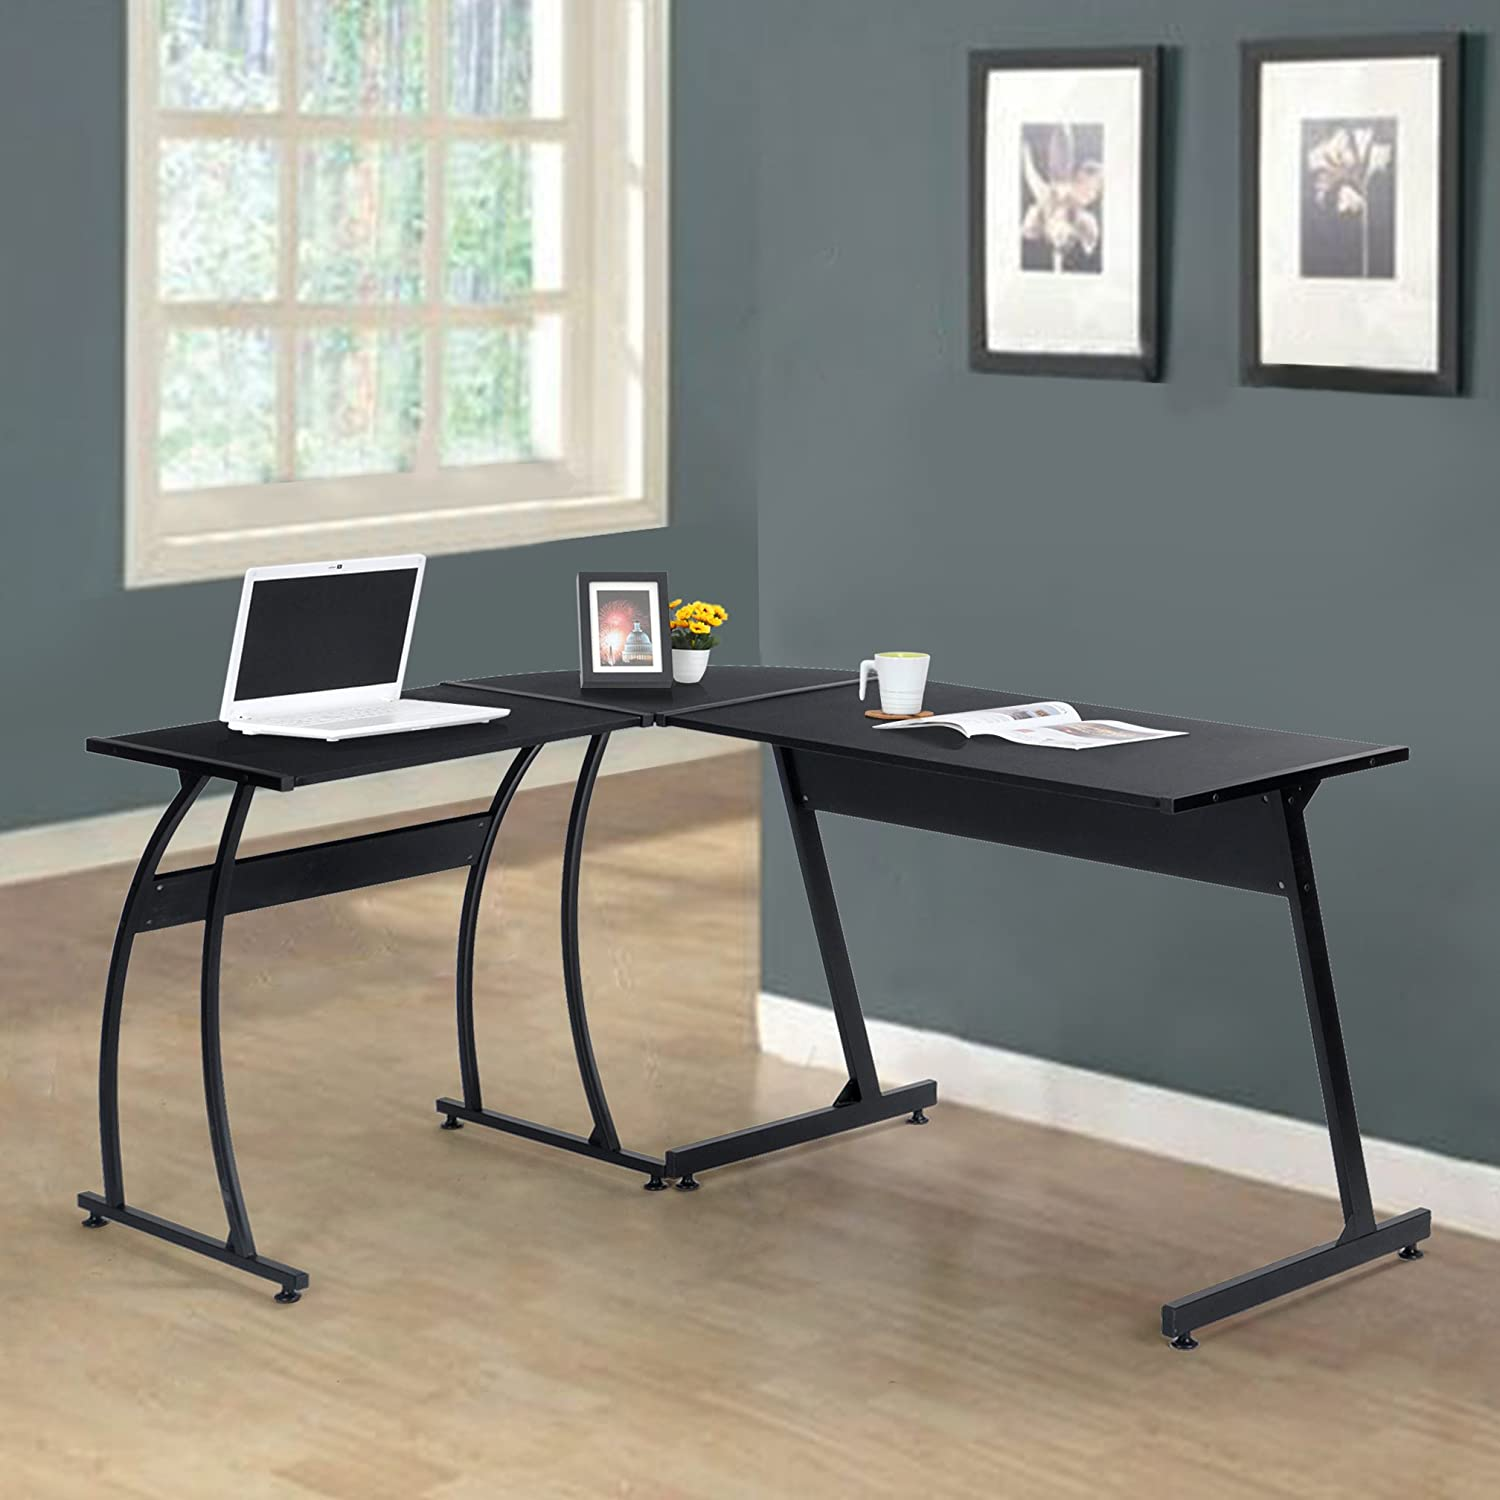 Etonnant Amazon.com: Black Finish Metal Wood L Shape Corner Computer Desk PC Laptop  Table Workstation Home Office: Kitchen U0026 Dining